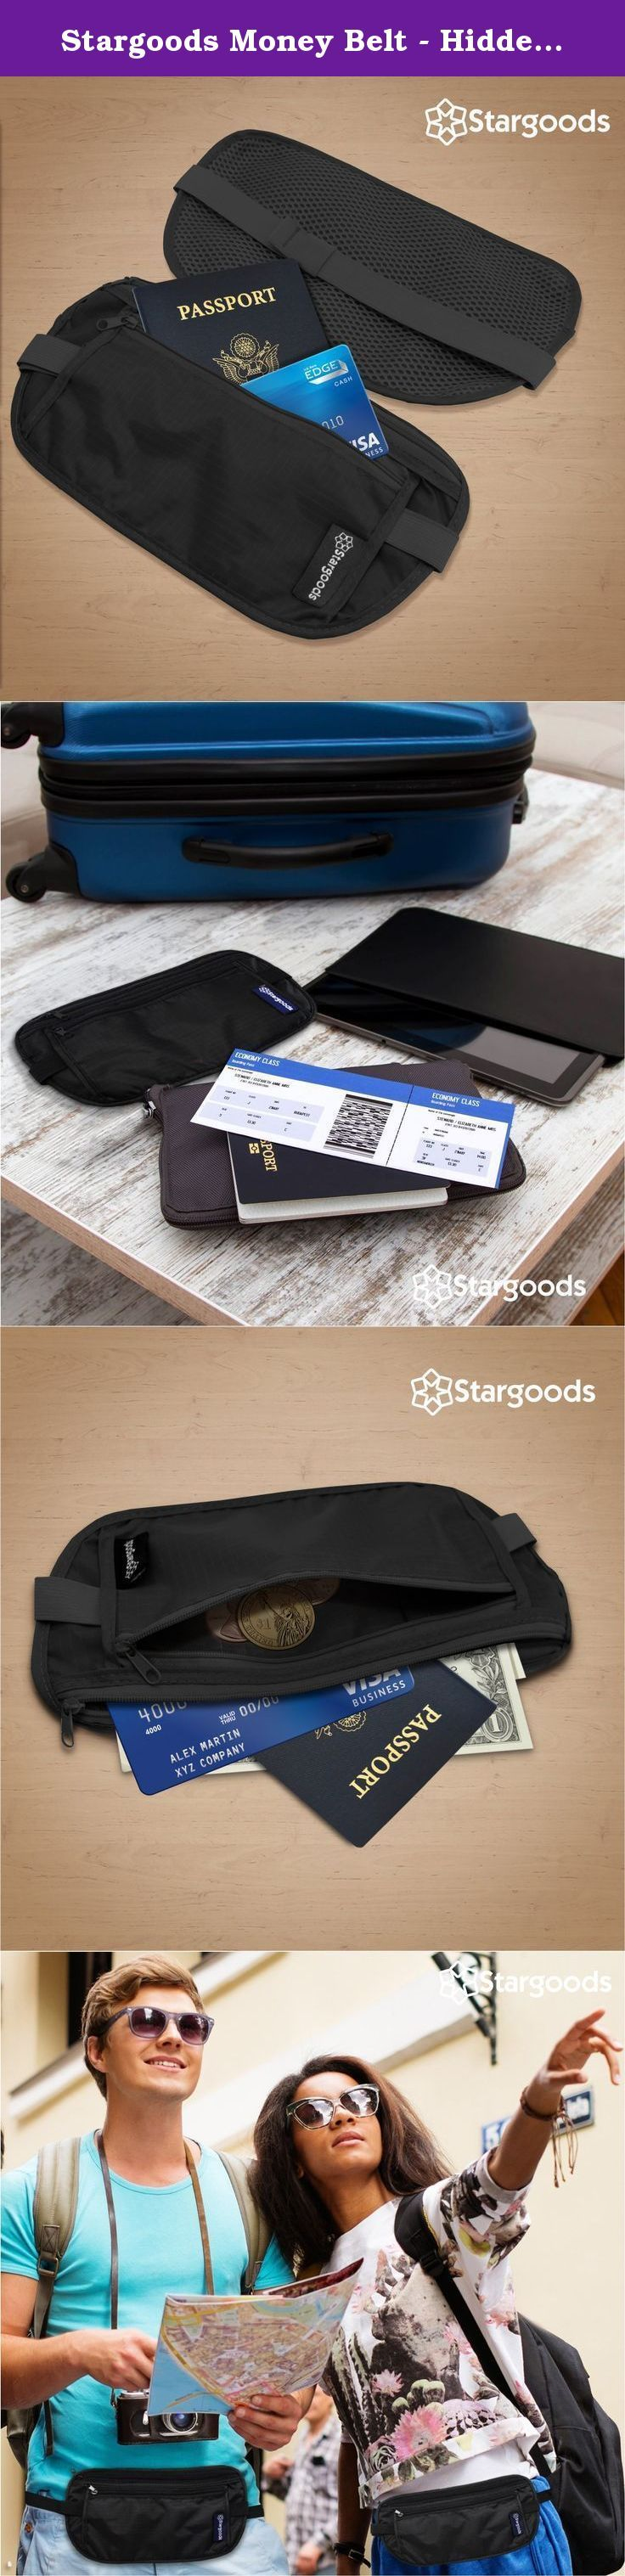 Stargoods Money Belt - Hidden Travel Wallet & Passport Holder (Set of 2). With the Stargoods Money Belt you will always be ready to travel without risk of losing your valuable items (cash, debit or credit cards, notes) and documents (Passport, ID, Visa), carry everything you need at your waist where you can easily access them all the time, you can also wear it under your clothes for additional security, we all know there are never enough hands to carry stuff at the airport, use the money...